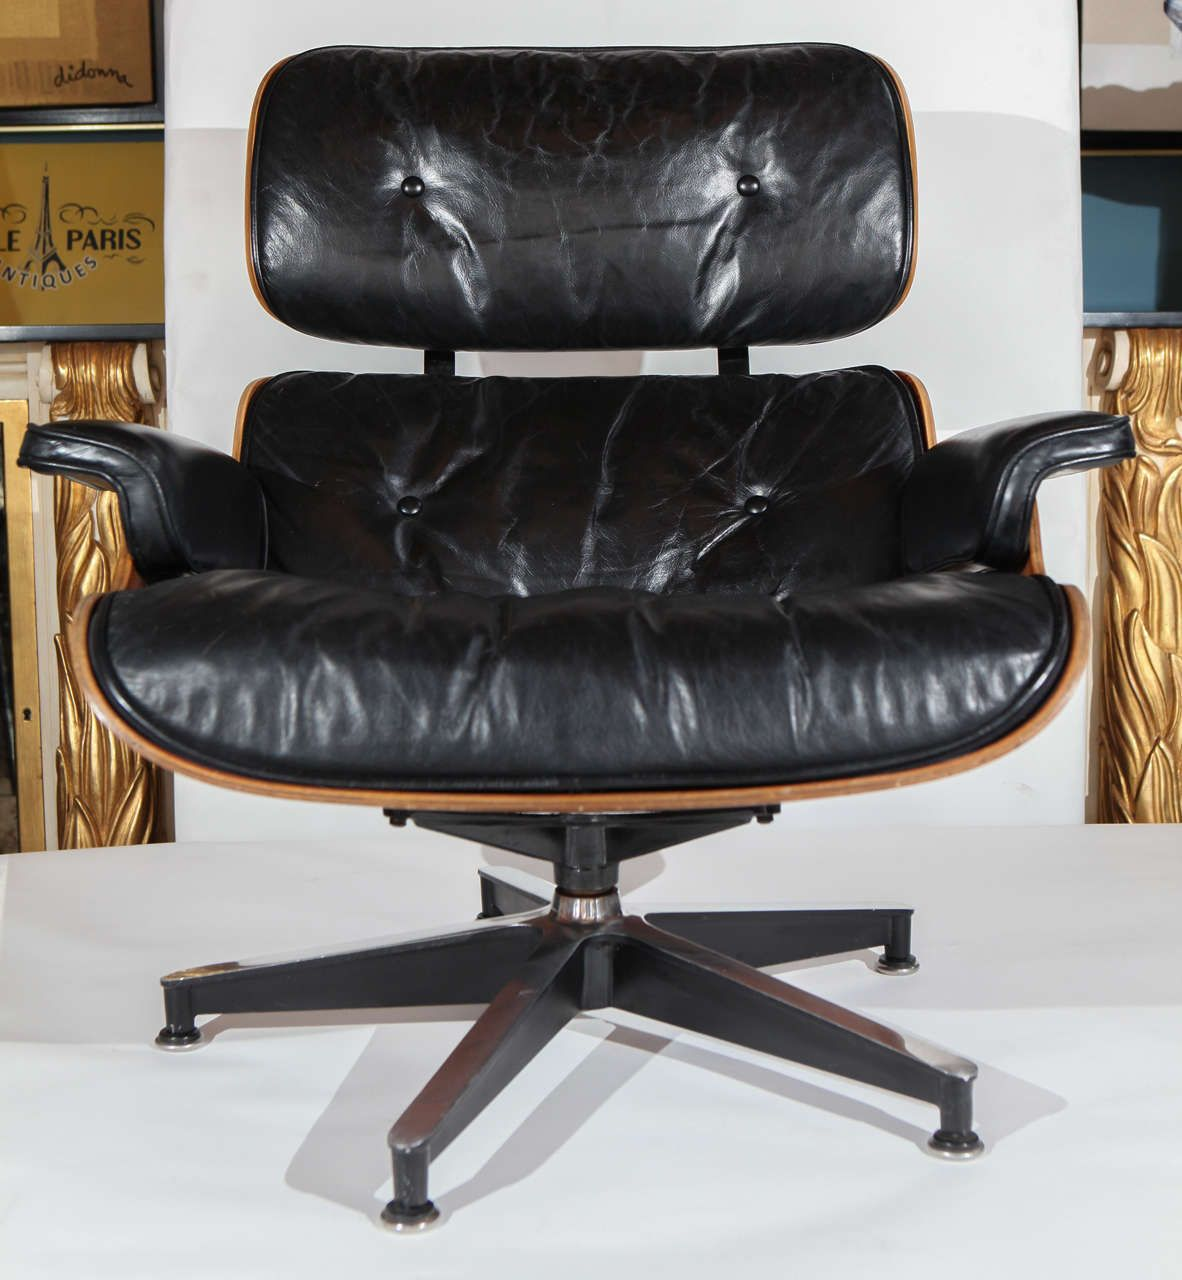 Early Original Eames Lounge 670, 671 Armchair and Ottoman